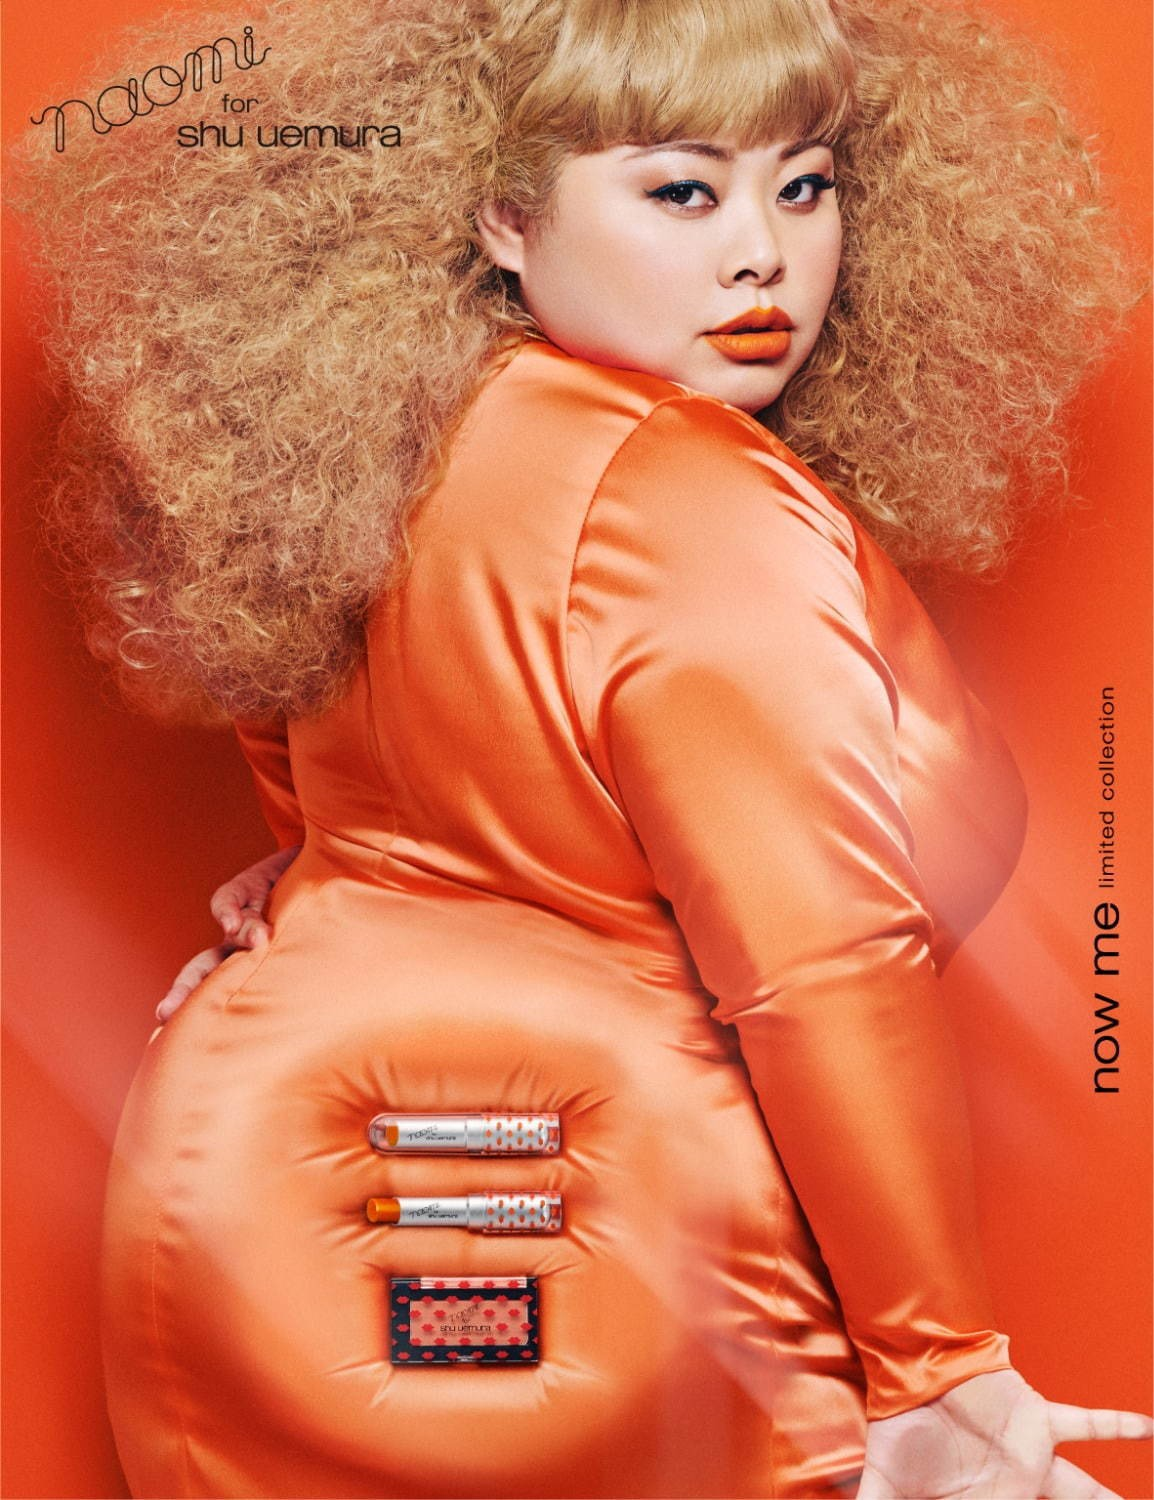 naomi for shu uemura limited collection 2019-05